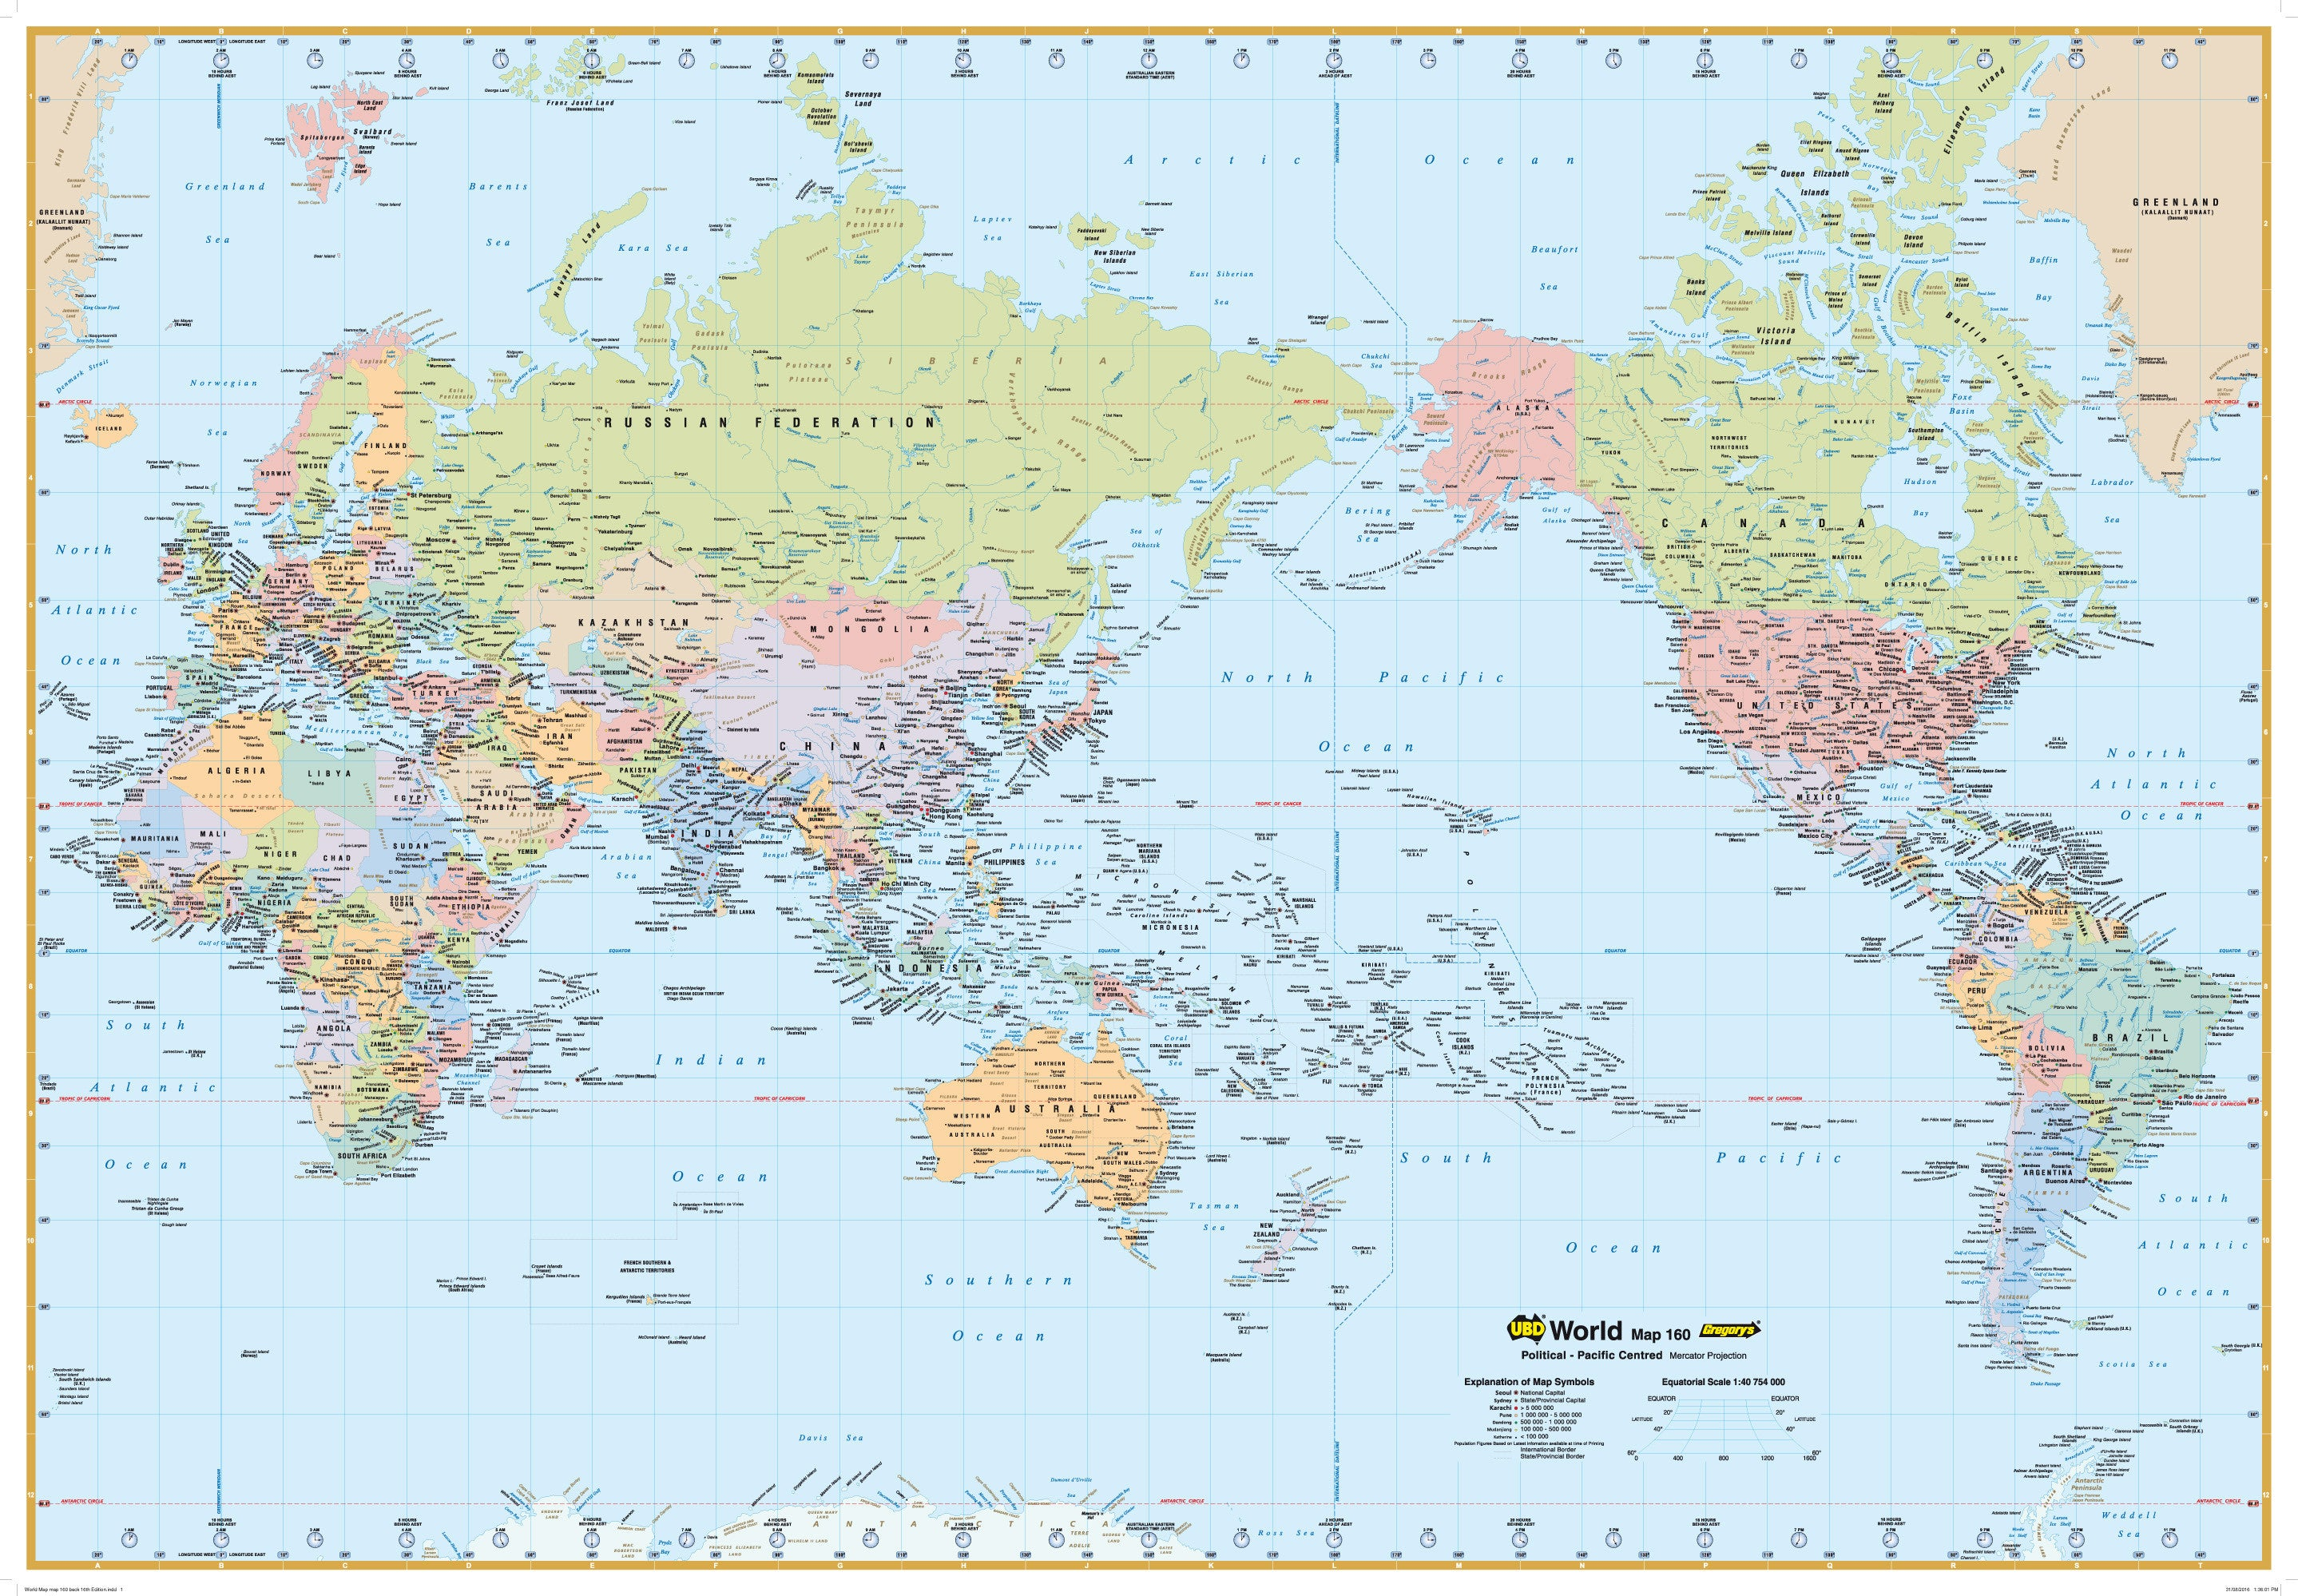 World Political Map UBD X Mm Laminated - Political map world